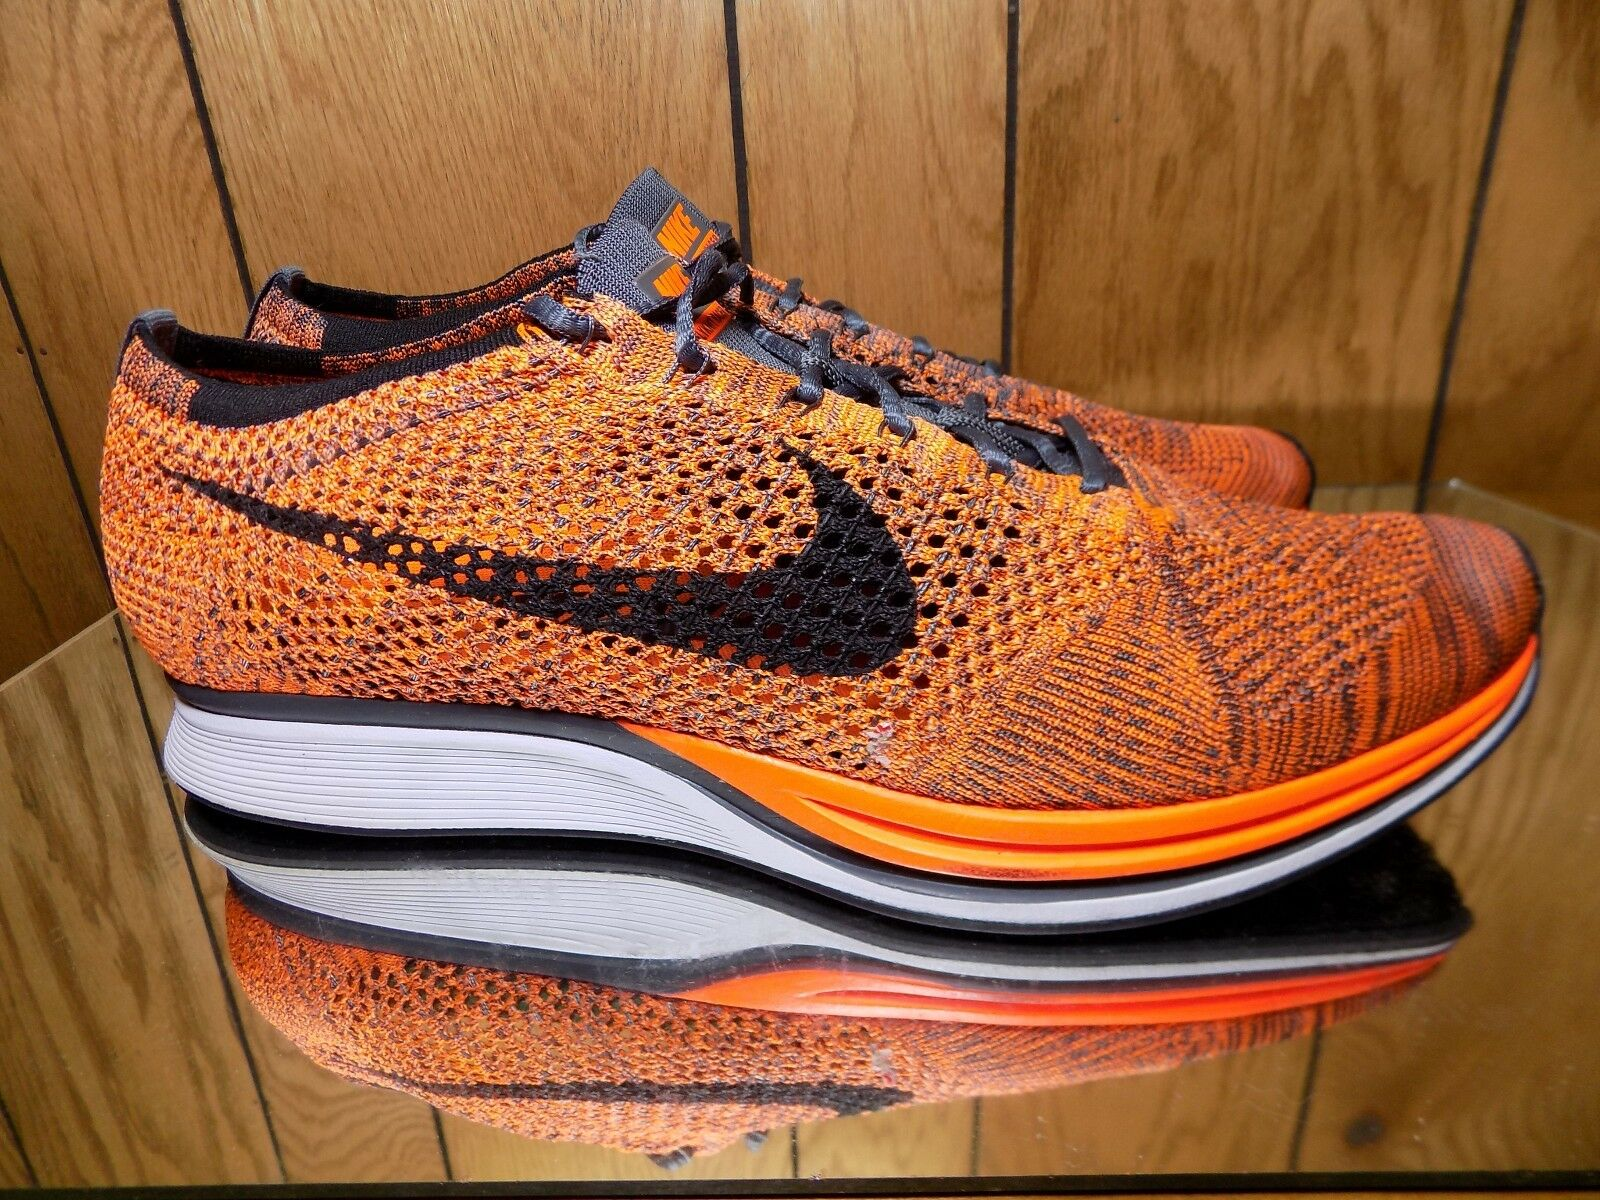 NEW NIKE AIR FLYKNIT RACER TOTAL ORANGE RUNNING SHOE 526628-810 MEN SIZE 13 NEW